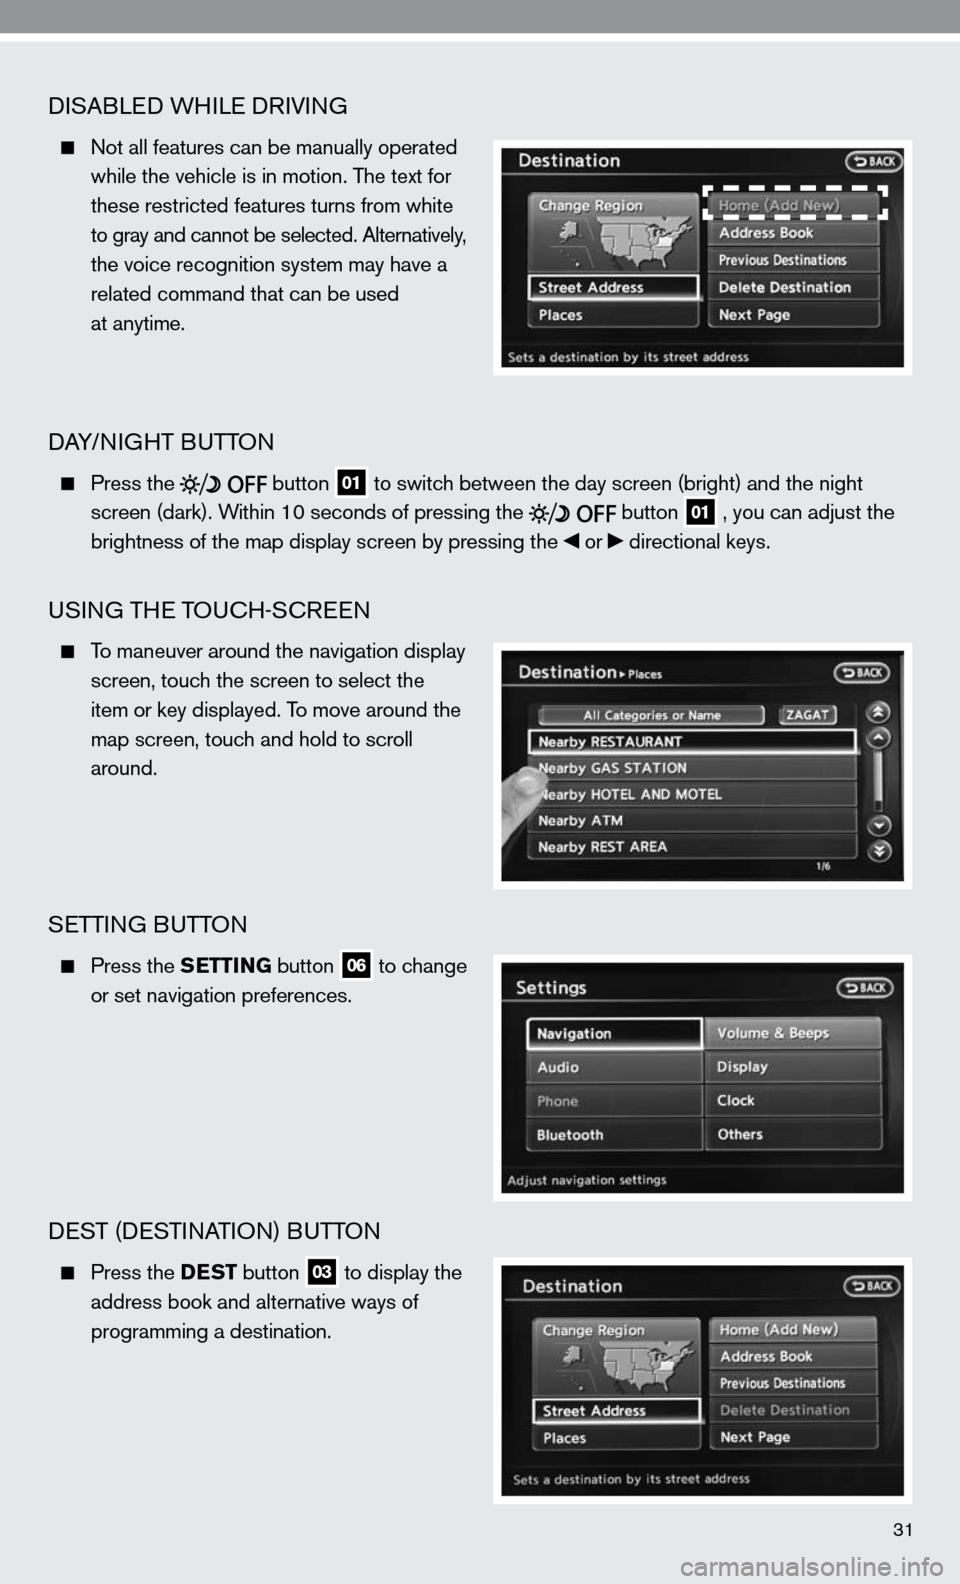 NISSAN ALTIMA COUPE 2010 D32 / 4.G Quick Reference Guide, Page 33